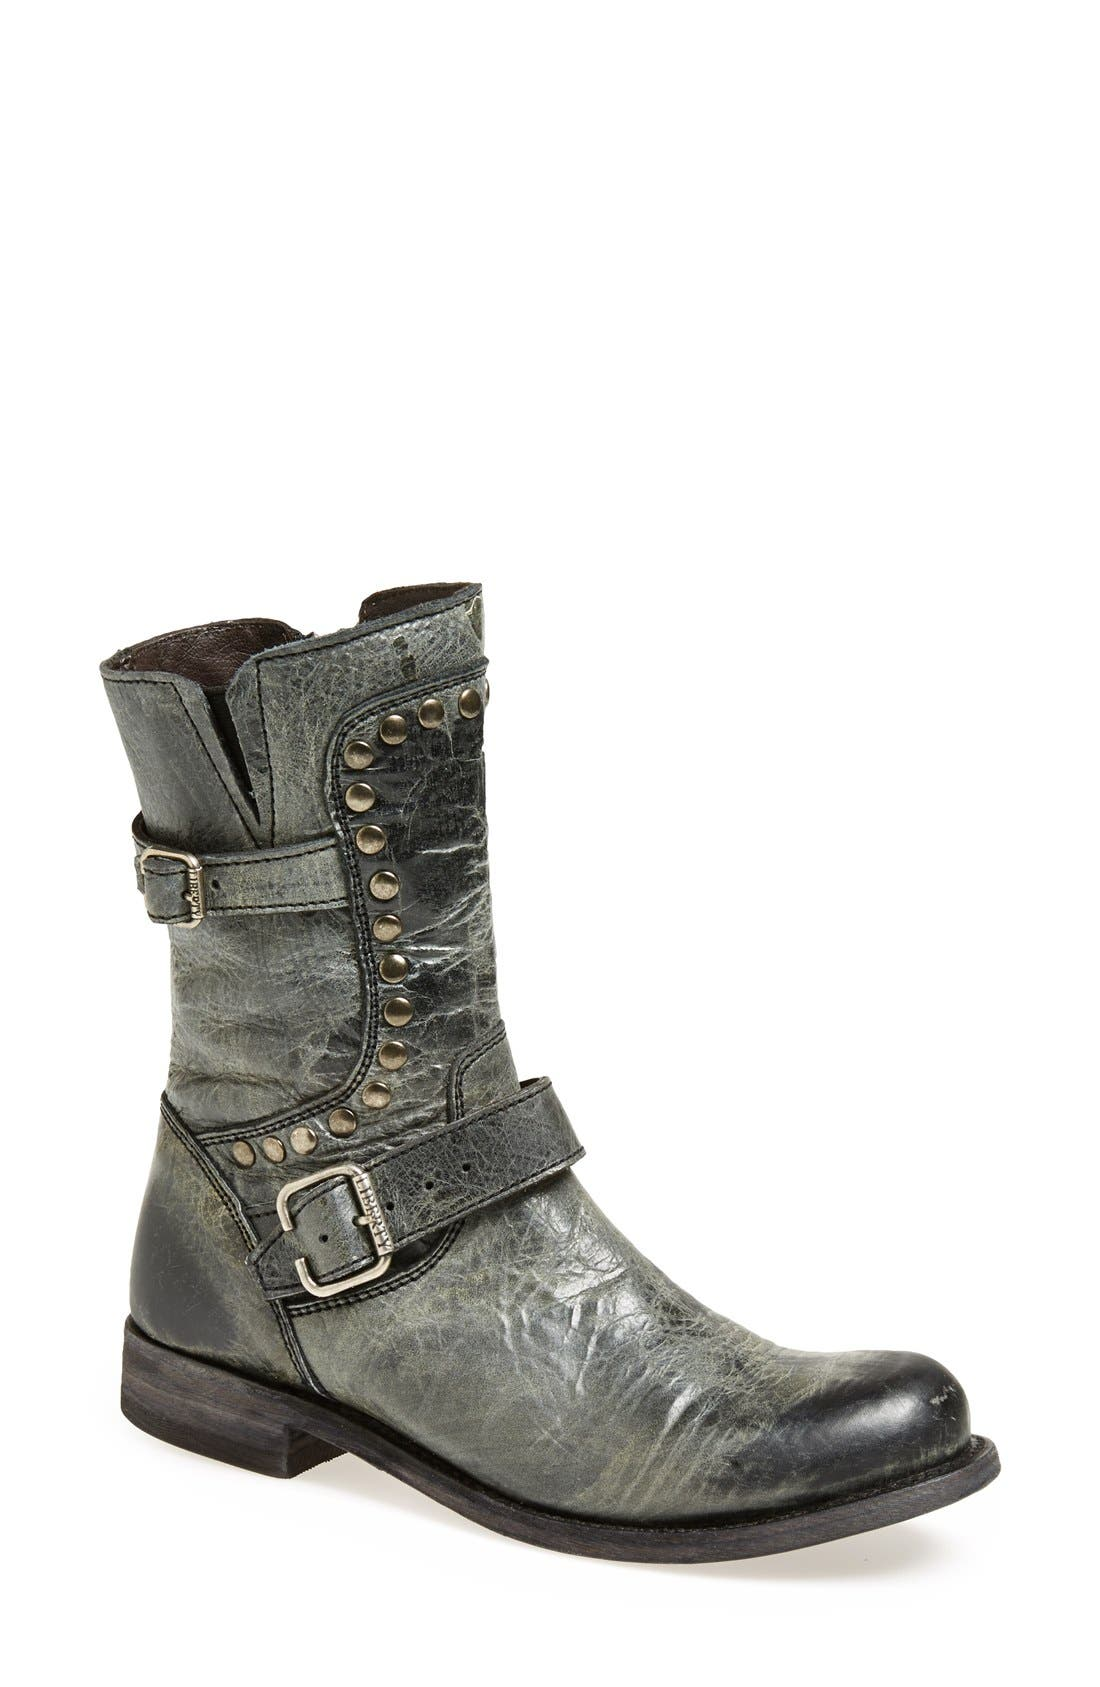 Alternate Image 1 Selected - Liberty Black 'El Paso' Studded Boot (Women)